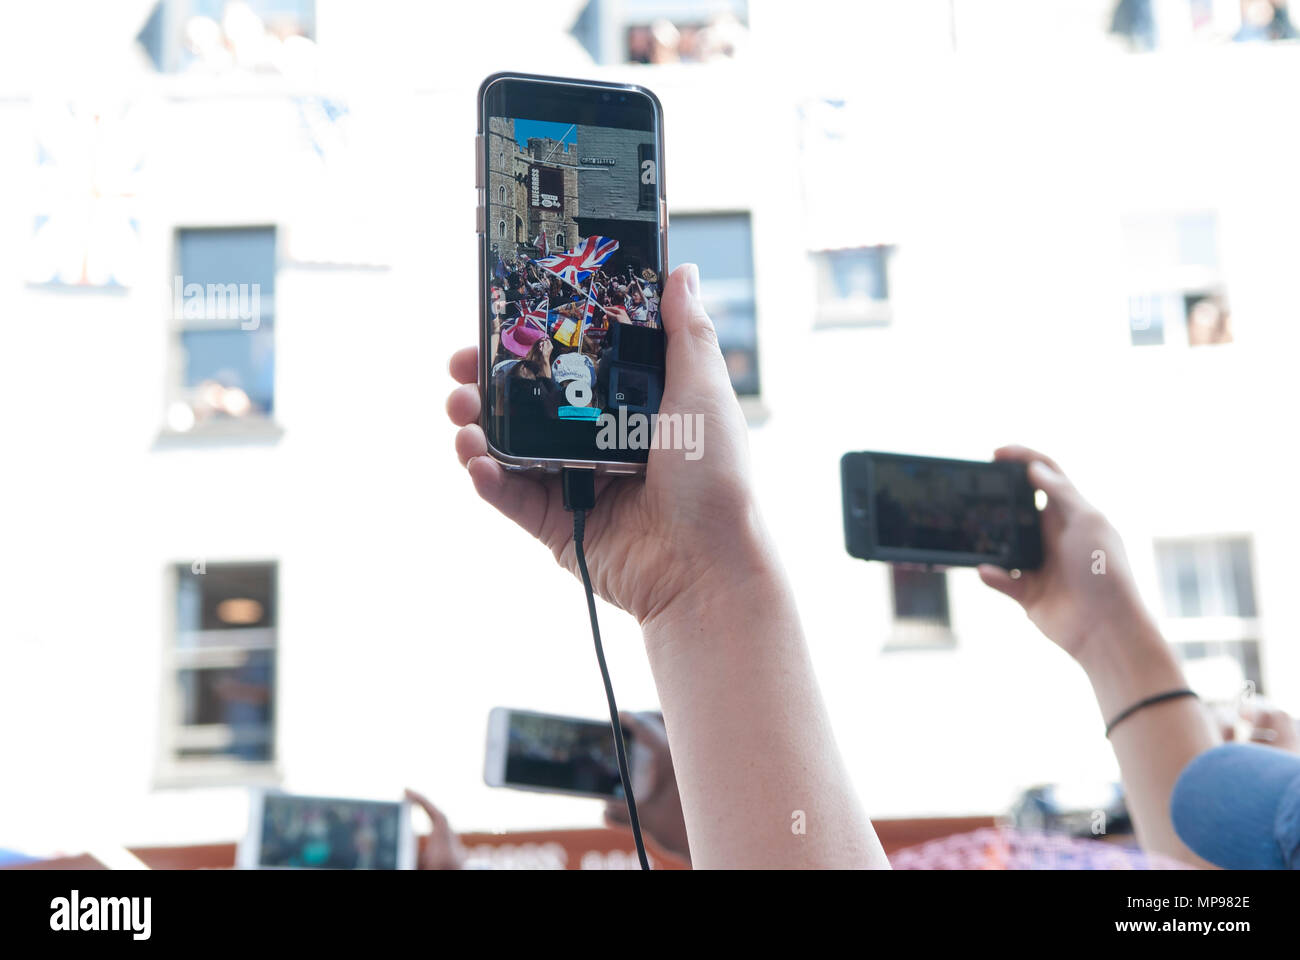 People in crowd with mobile devises using iphones to record events. Royal Wedding Prince Harry Meghan Markle the Duke and Duchess of Sussex 19th 19 May 2018 HOMER SYKES Stock Photo